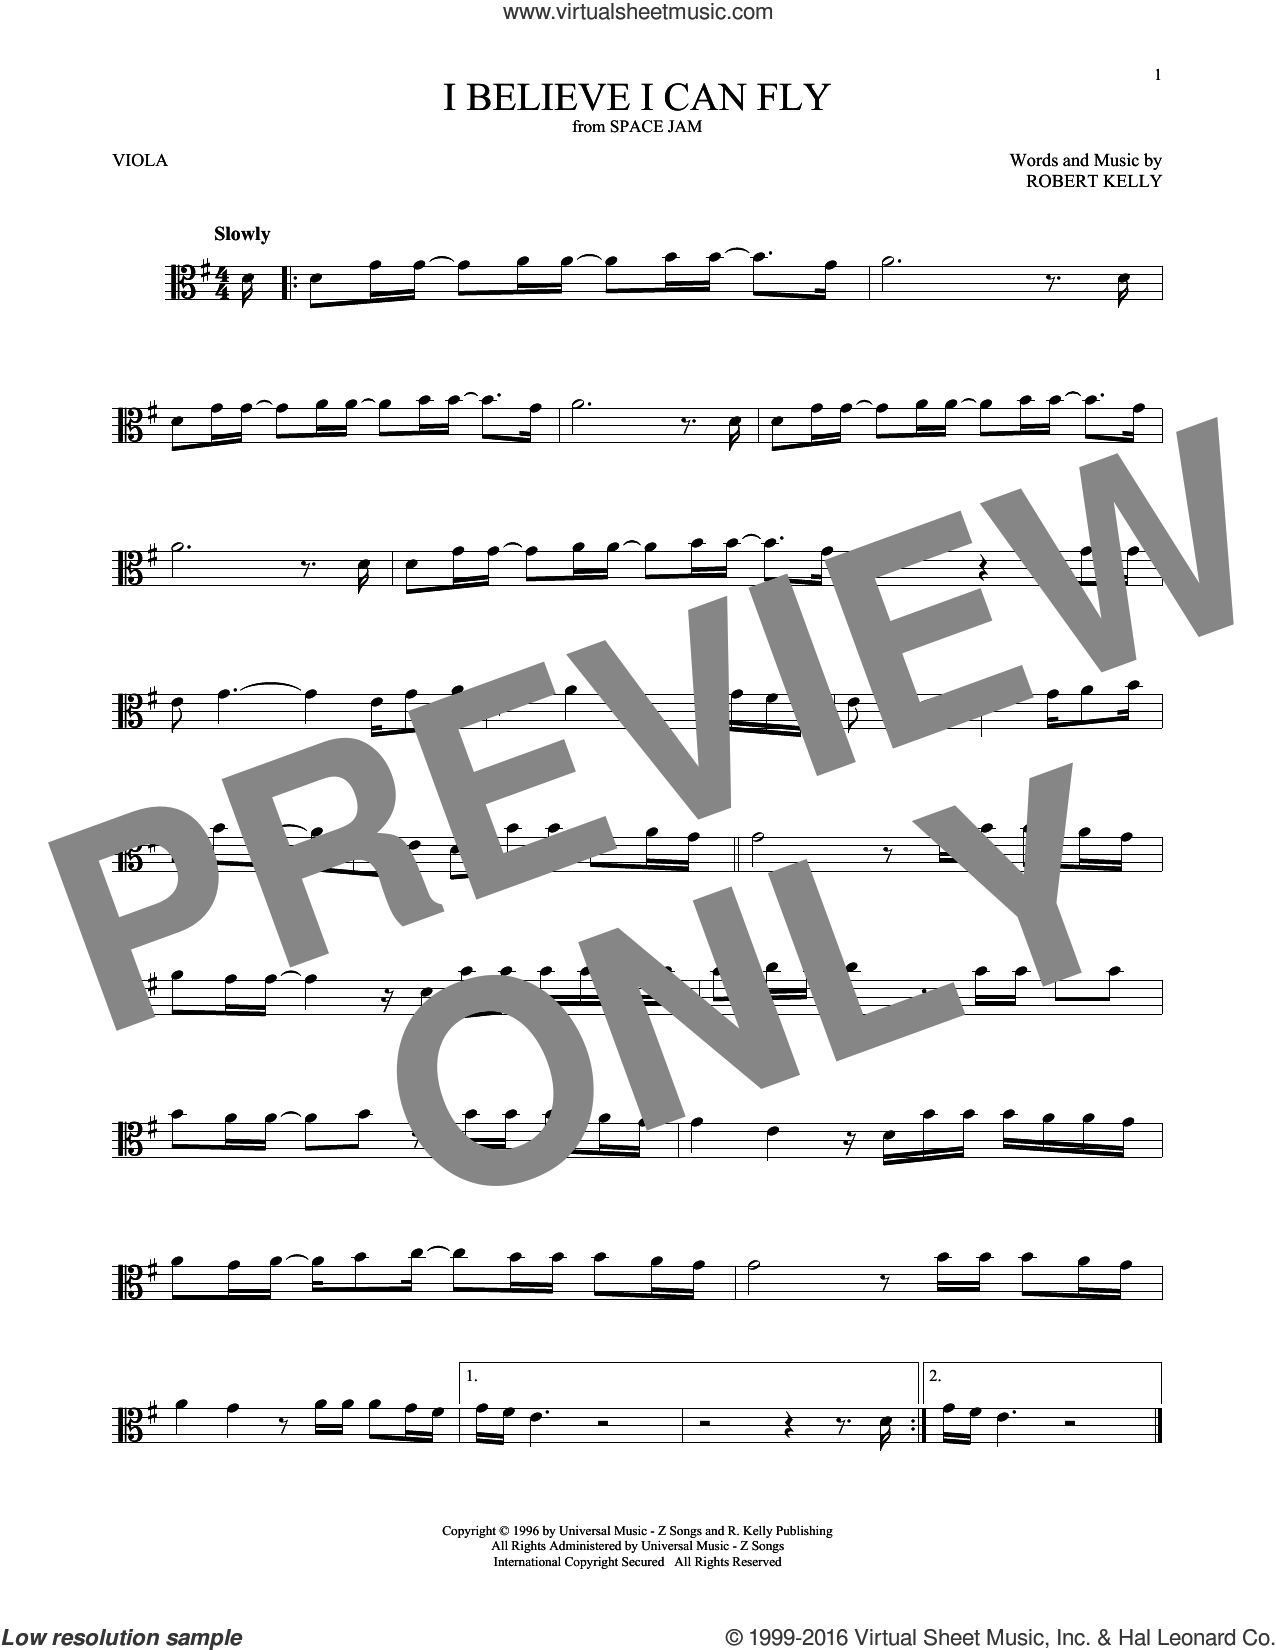 I Believe I Can Fly sheet music for viola solo by Robert Kelly. Score Image Preview.